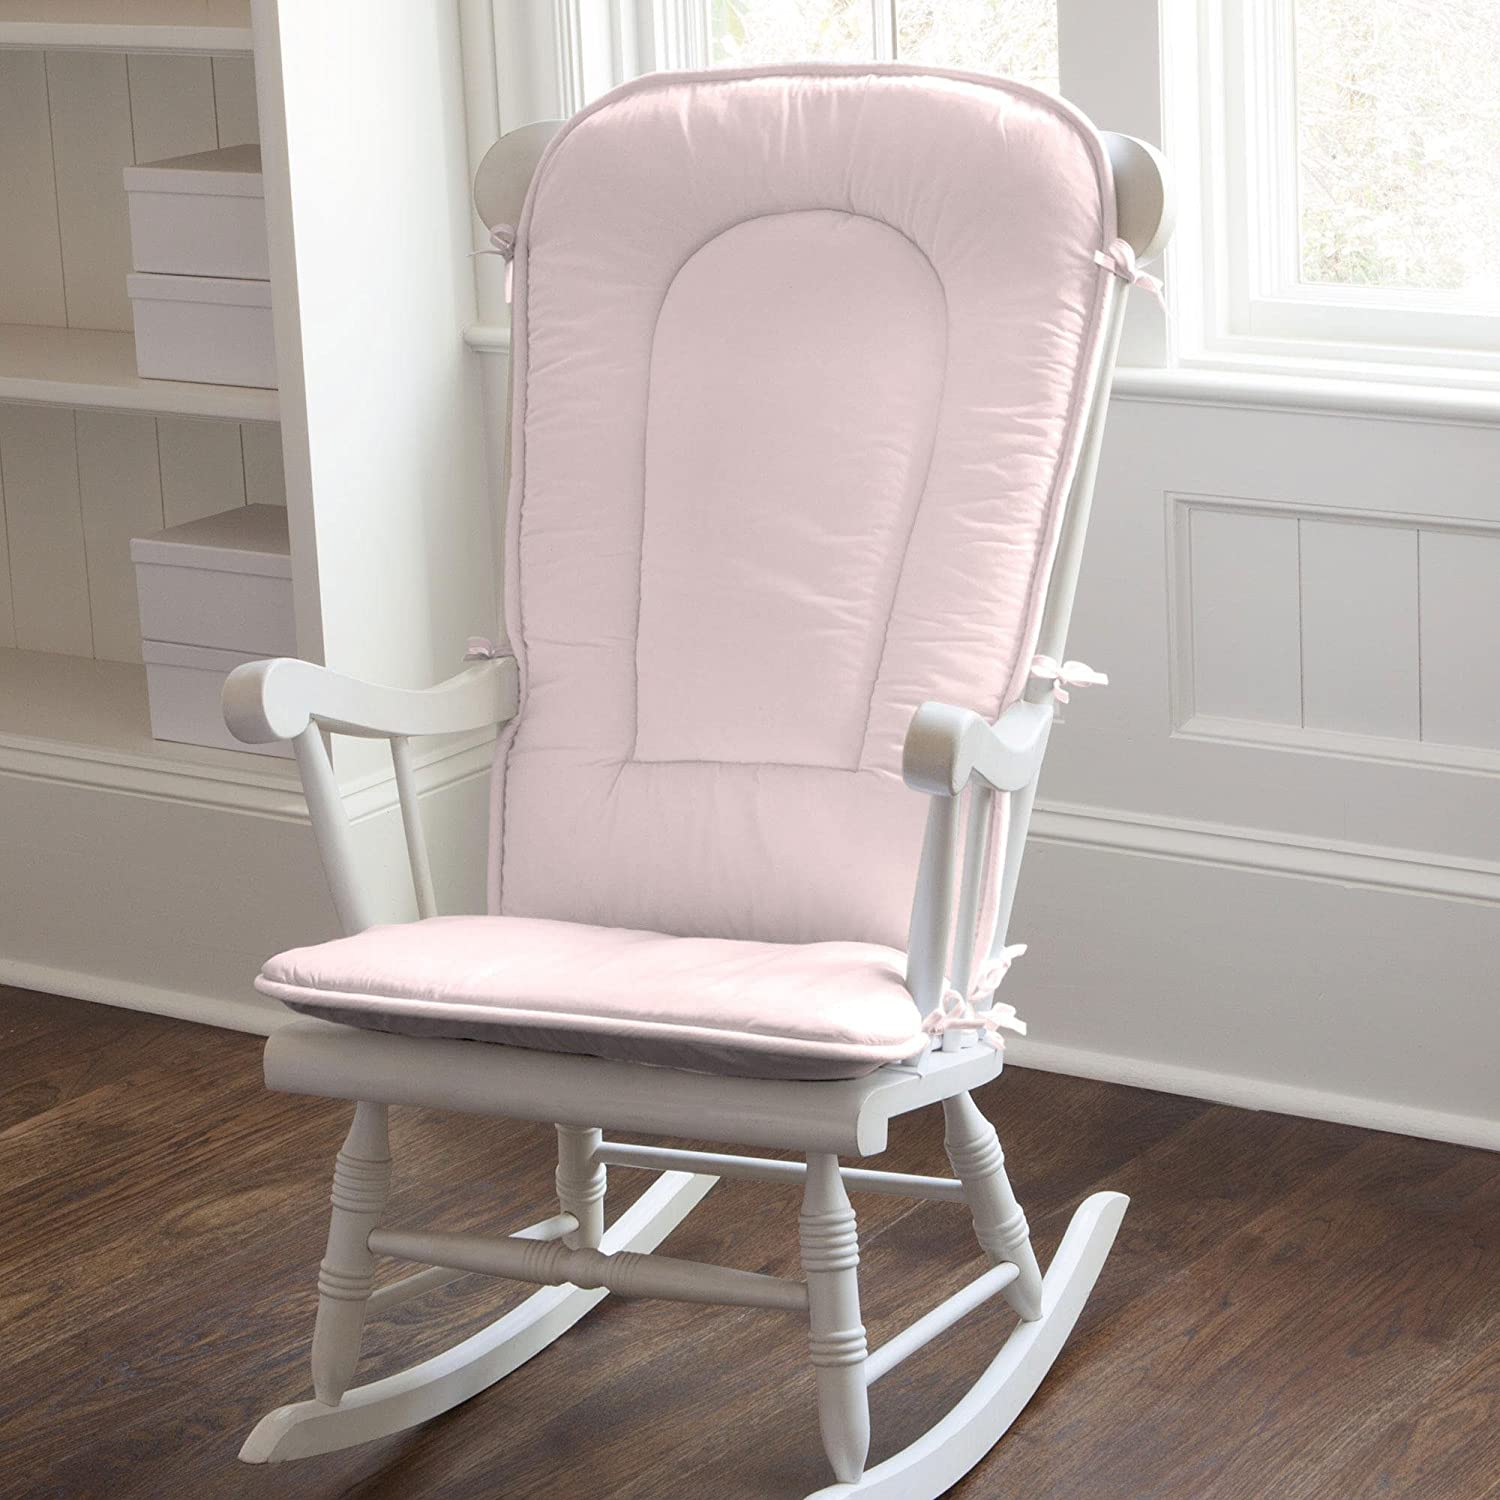 Fantastic Carousel Designs Solid Pink Rocking Chair Pad Ibusinesslaw Wood Chair Design Ideas Ibusinesslaworg